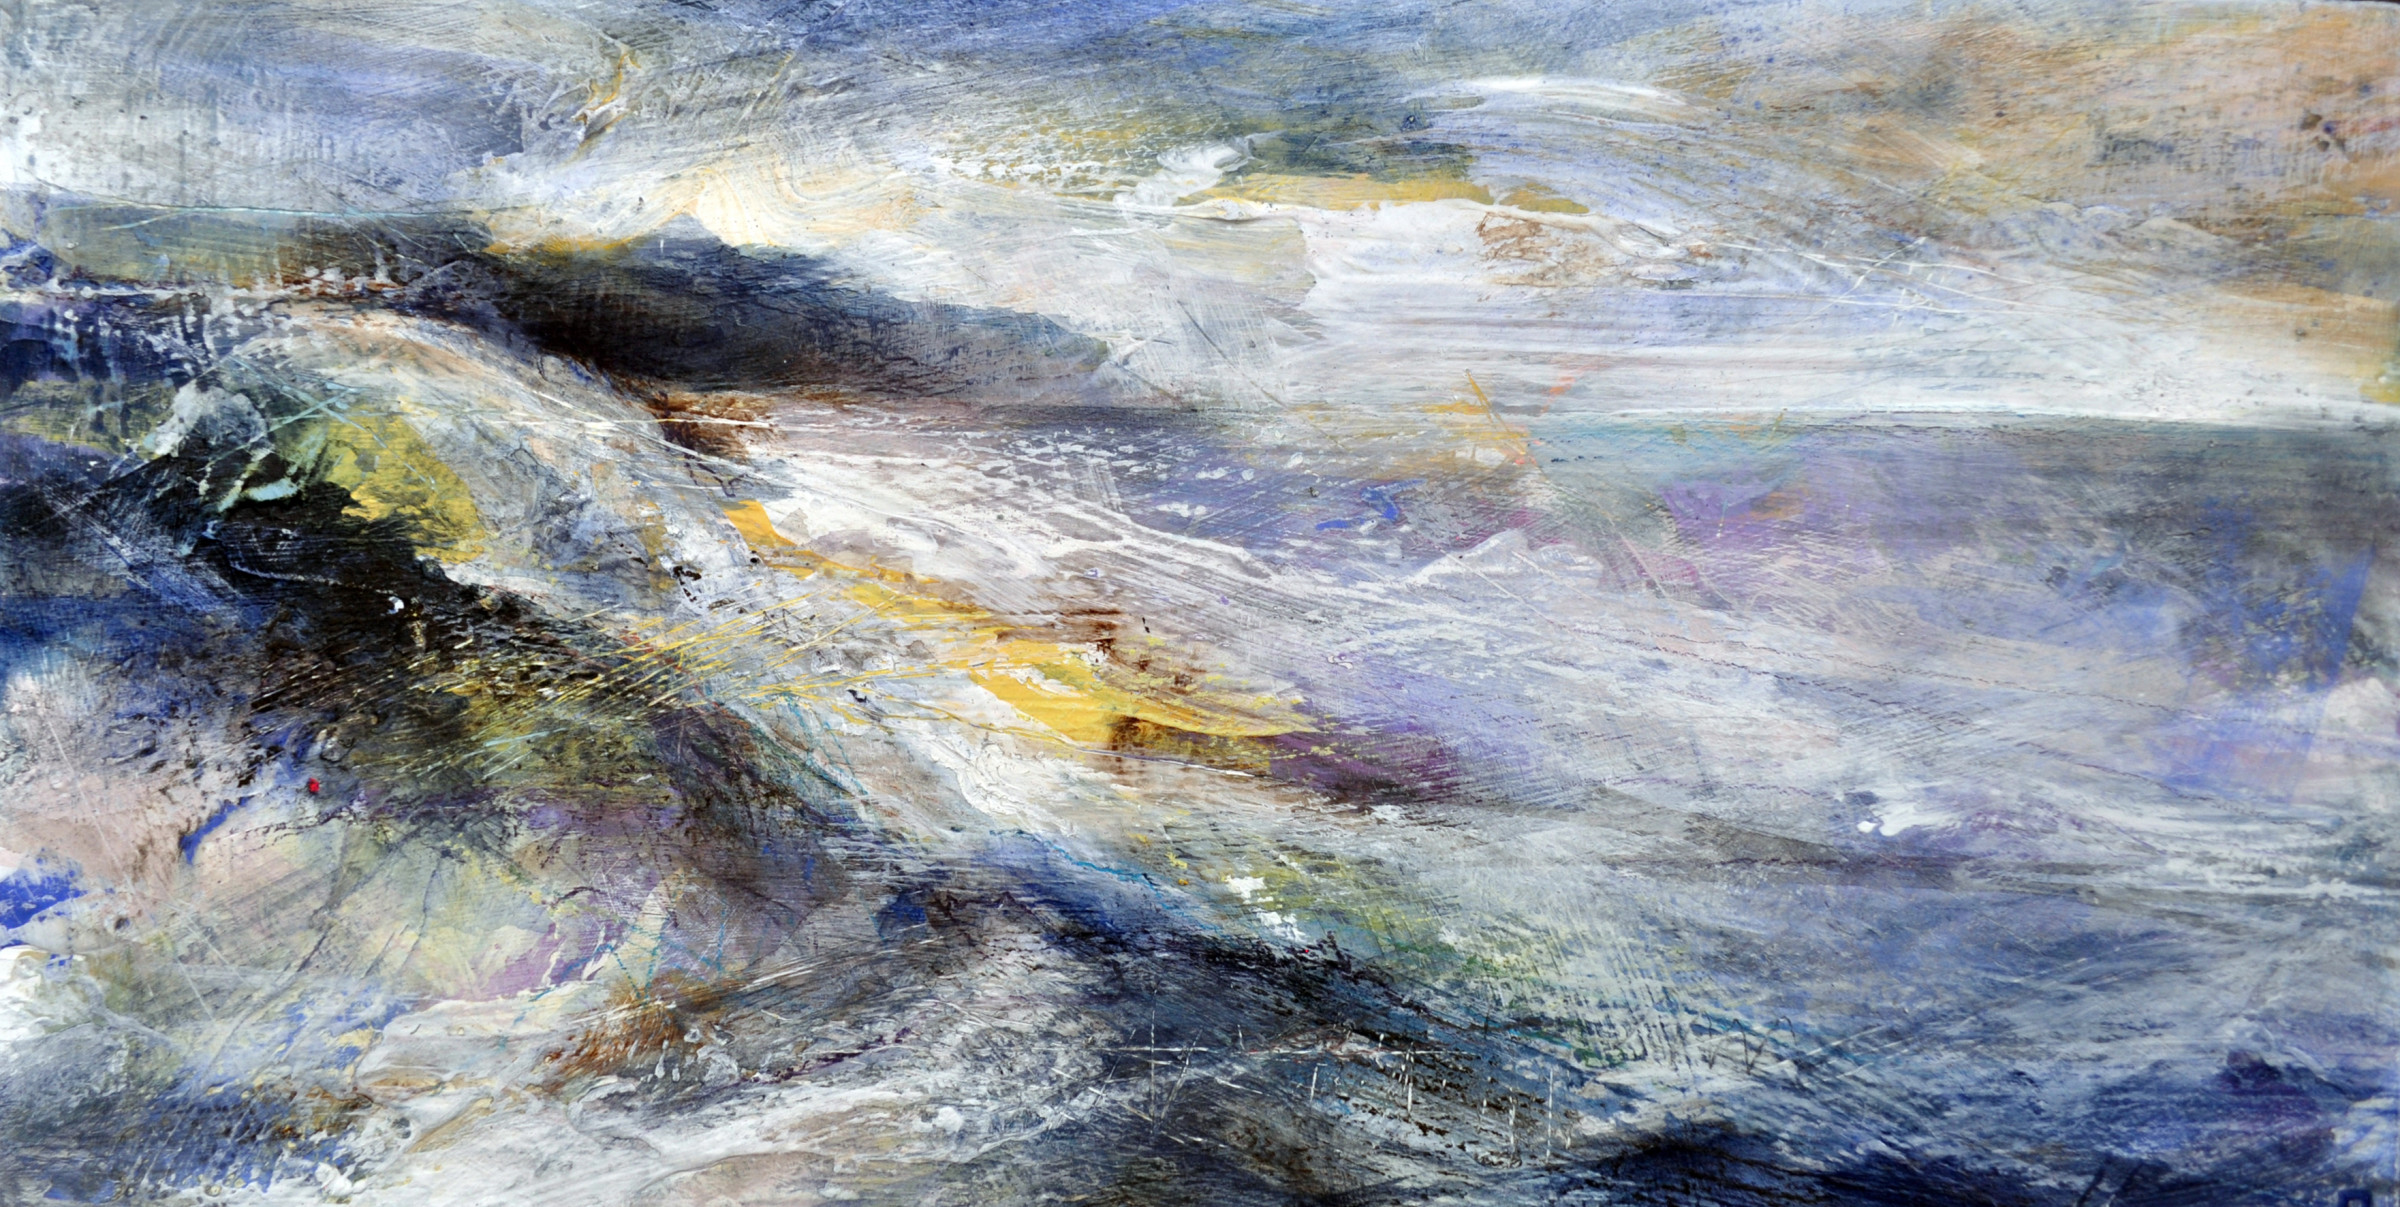 <span class=&#34;link fancybox-details-link&#34;><a href=&#34;/artists/90-freya-horsley/works/4172-freya-horsley-turn-2017/&#34;>View Detail Page</a></span><div class=&#34;artist&#34;><strong>Freya Horsley</strong></div> <div class=&#34;title&#34;><em>Turn</em>, 2017</div> <div class=&#34;signed_and_dated&#34;>signed on reverse</div> <div class=&#34;medium&#34;>mixed media on board, framed and glazed</div> <div class=&#34;dimensions&#34;>36 x 66 cm<br /> 14 1/8 x 26 inches</div><div class=&#34;copyright_line&#34;>OwnArt: £ 38 x 10 Months, 0% APR</div>